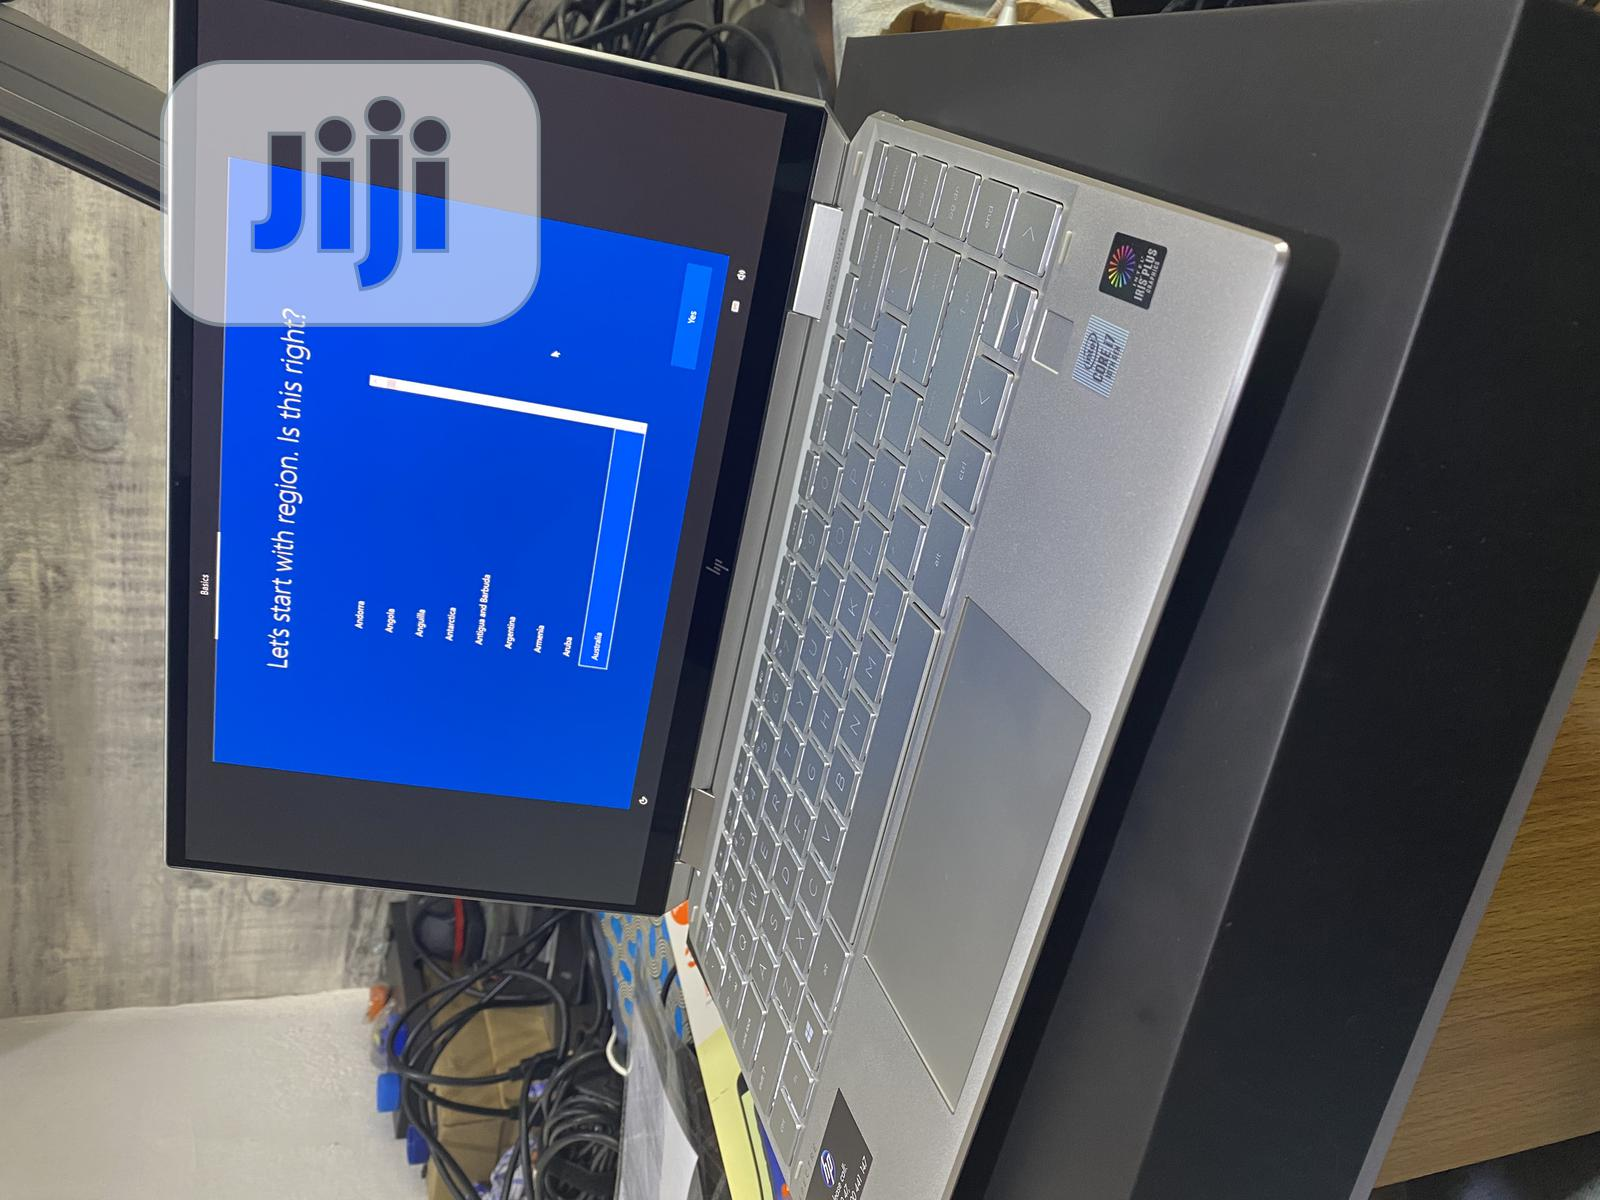 New Laptop HP Spectre X360 13 16GB Intel Core I7 SSD 512GB | Laptops & Computers for sale in Ikeja, Lagos State, Nigeria